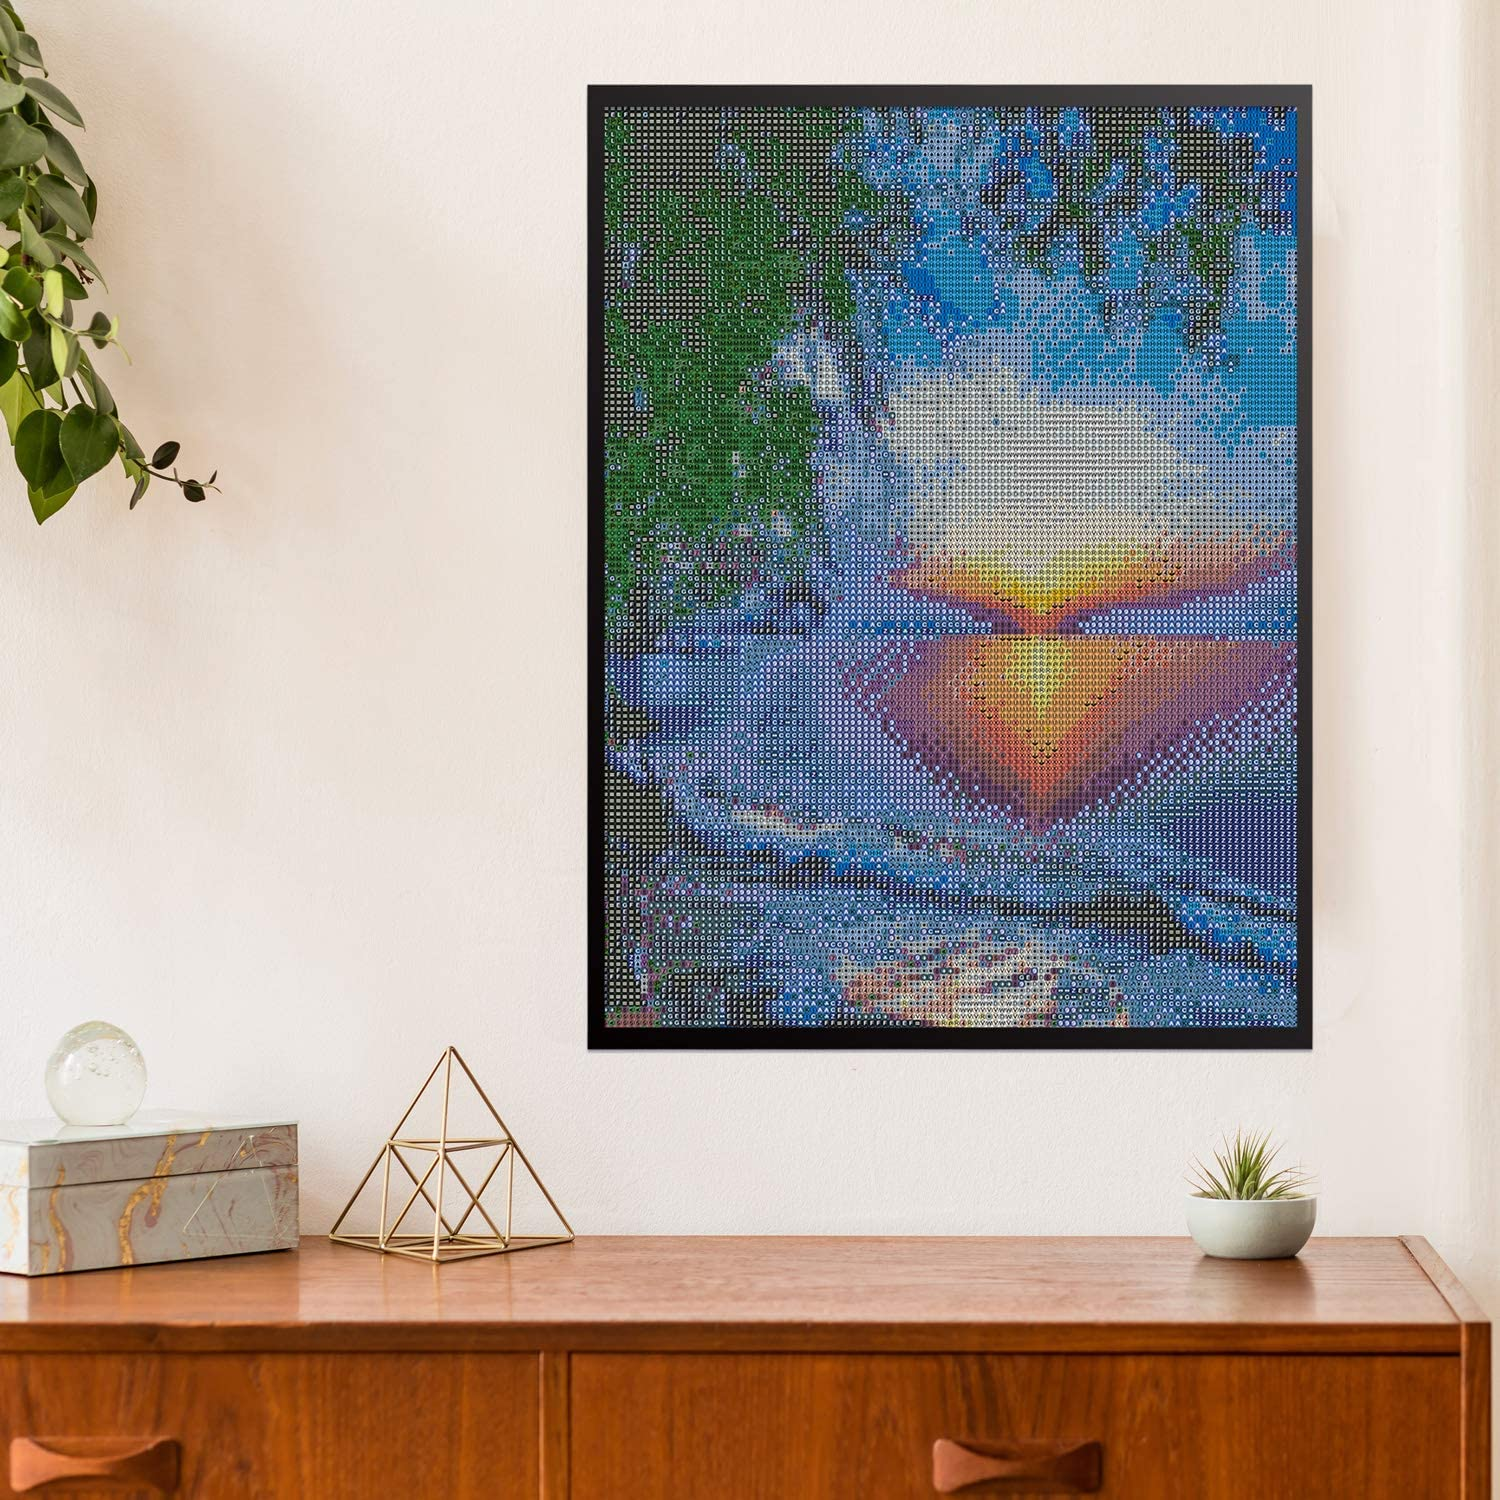 45 x 35 cm Elcoho 5D DIY Diamond Painting Love Beach Rhinestone Painting Cross Stitch Full Drill Crystal Embroidery Pictures for Home Wall Decor